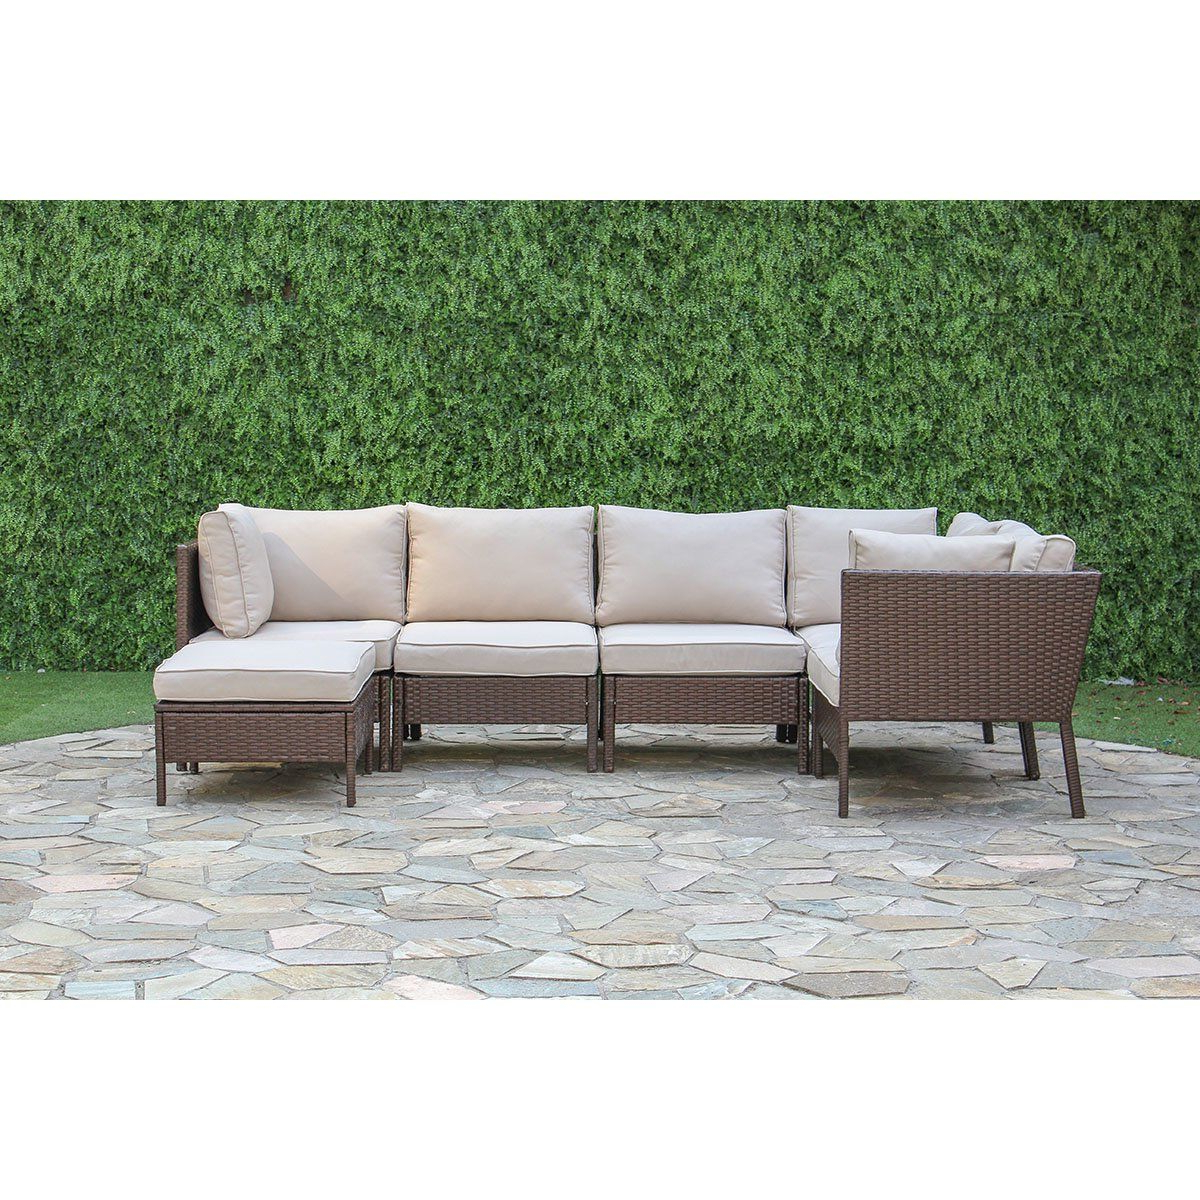 Madison Avenue Patio Sectionals With Sunbrella Cushions Pertaining To Famous Garrick 6 Piece Outdoor Sectional Deep Seating Group With (View 10 of 20)